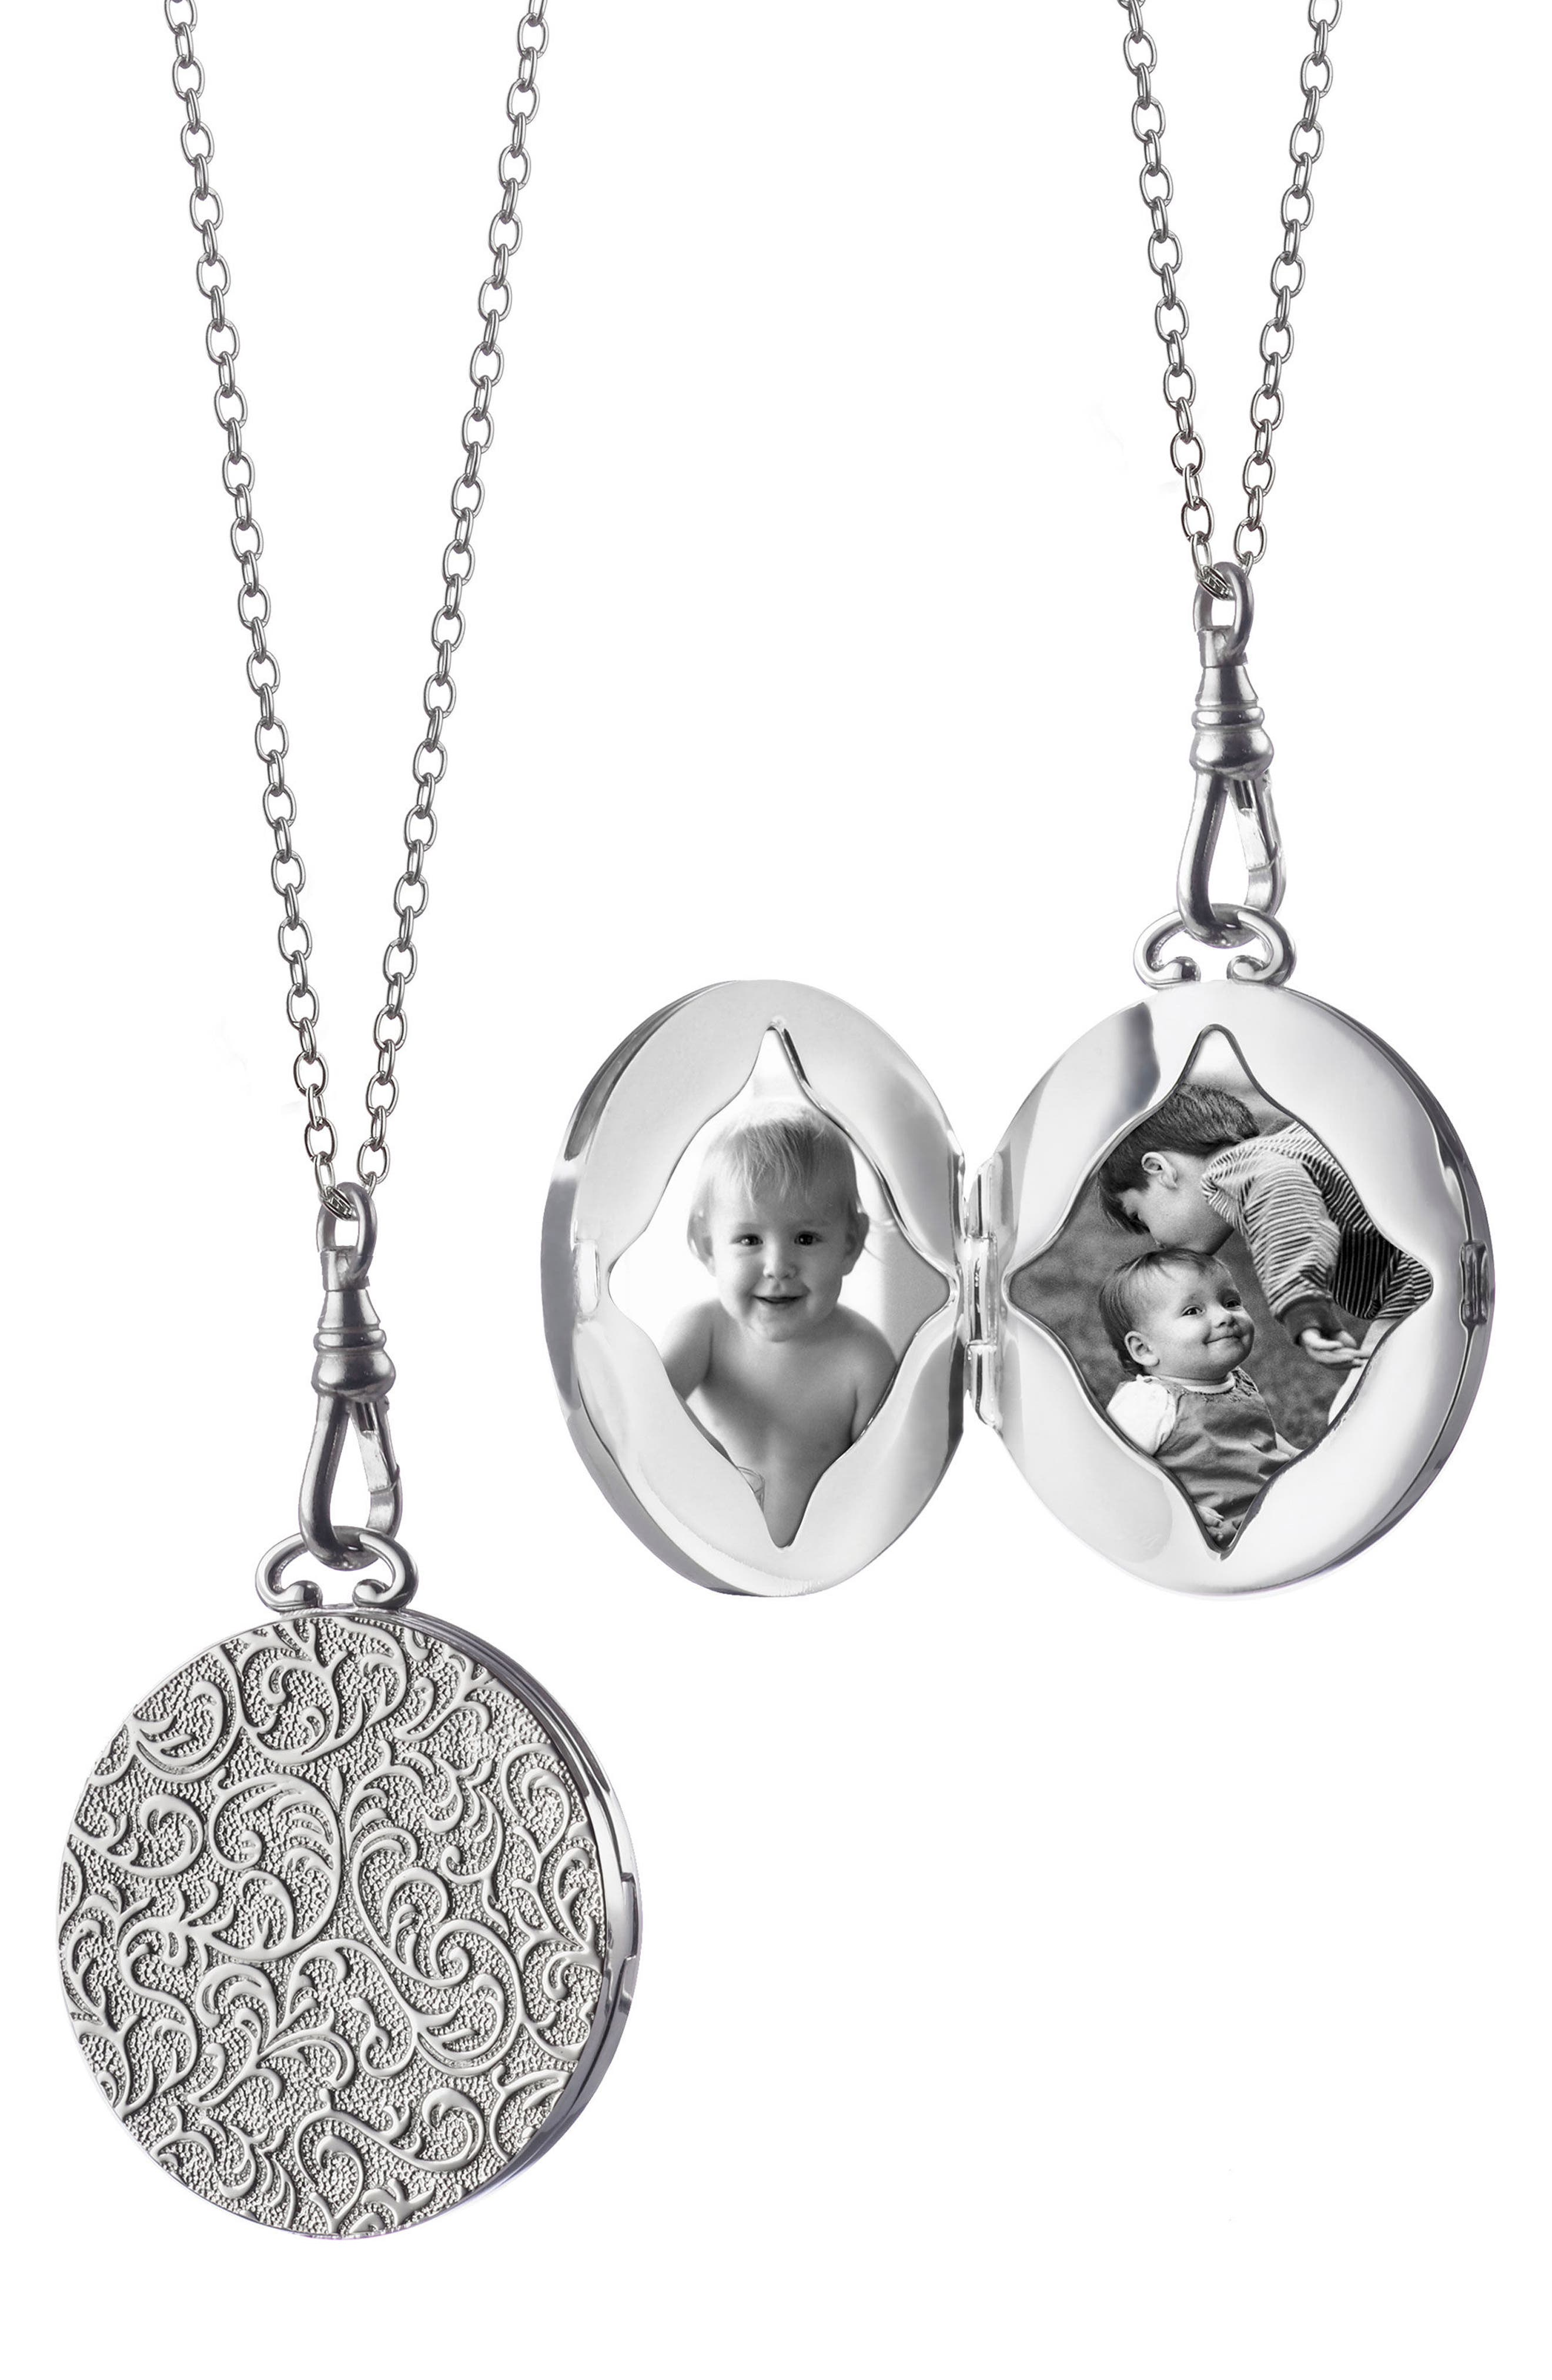 Swirling Vine Round Locket Necklace,                             Alternate thumbnail 4, color,                             STERLING SILVER